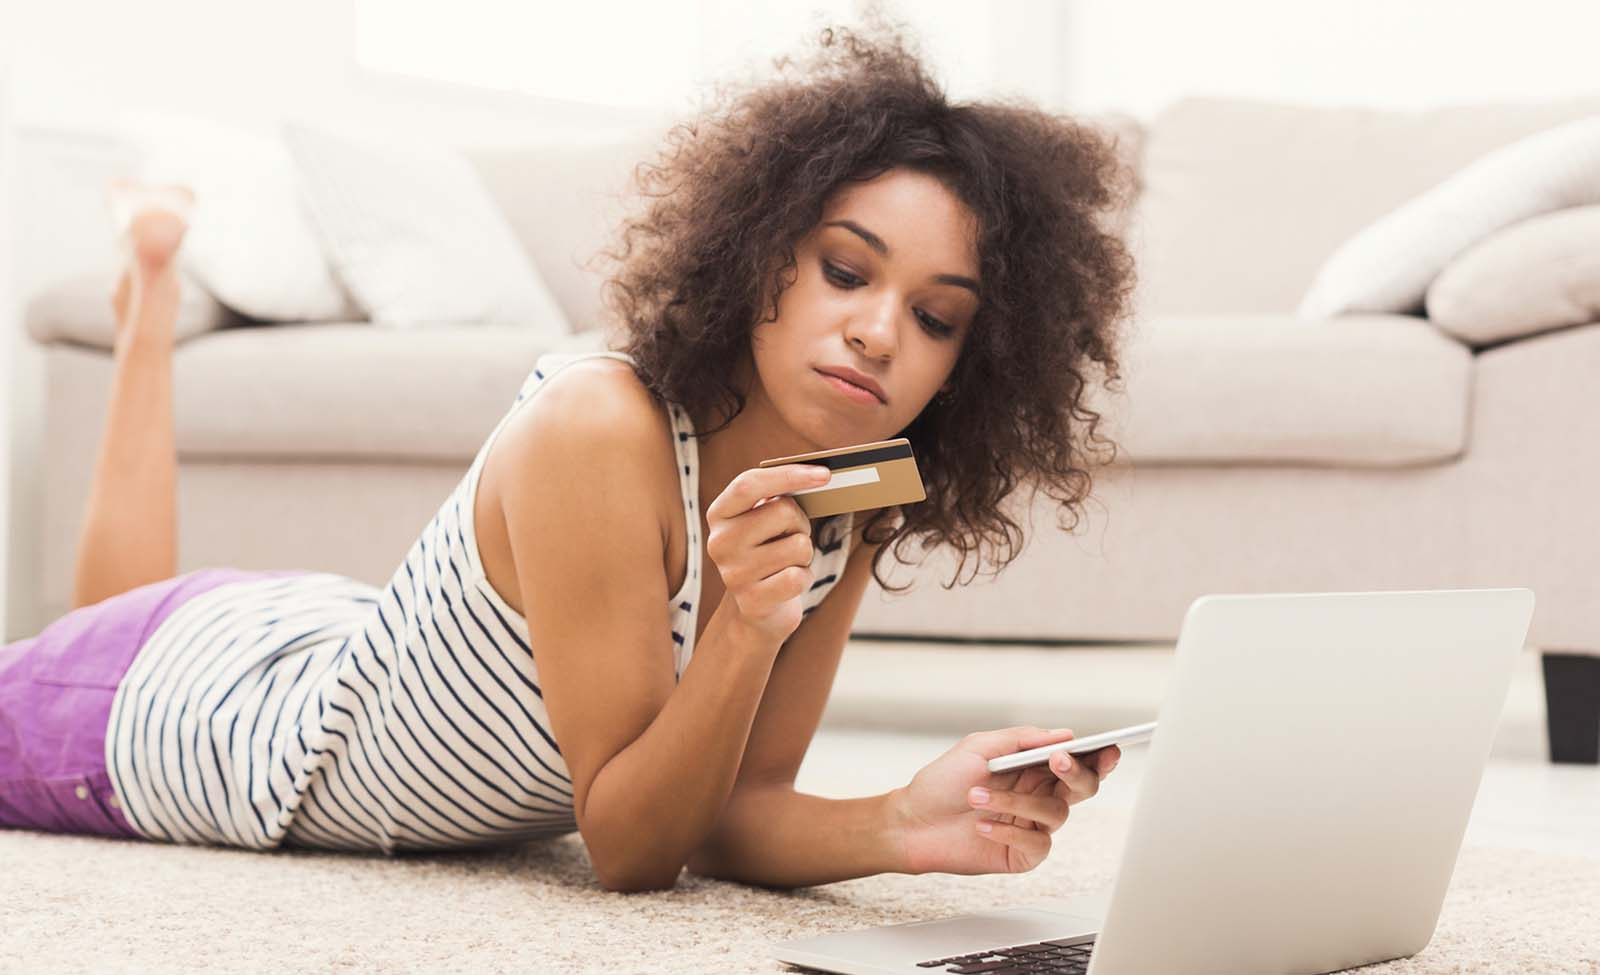 What credit score do you need for a Walmart credit card